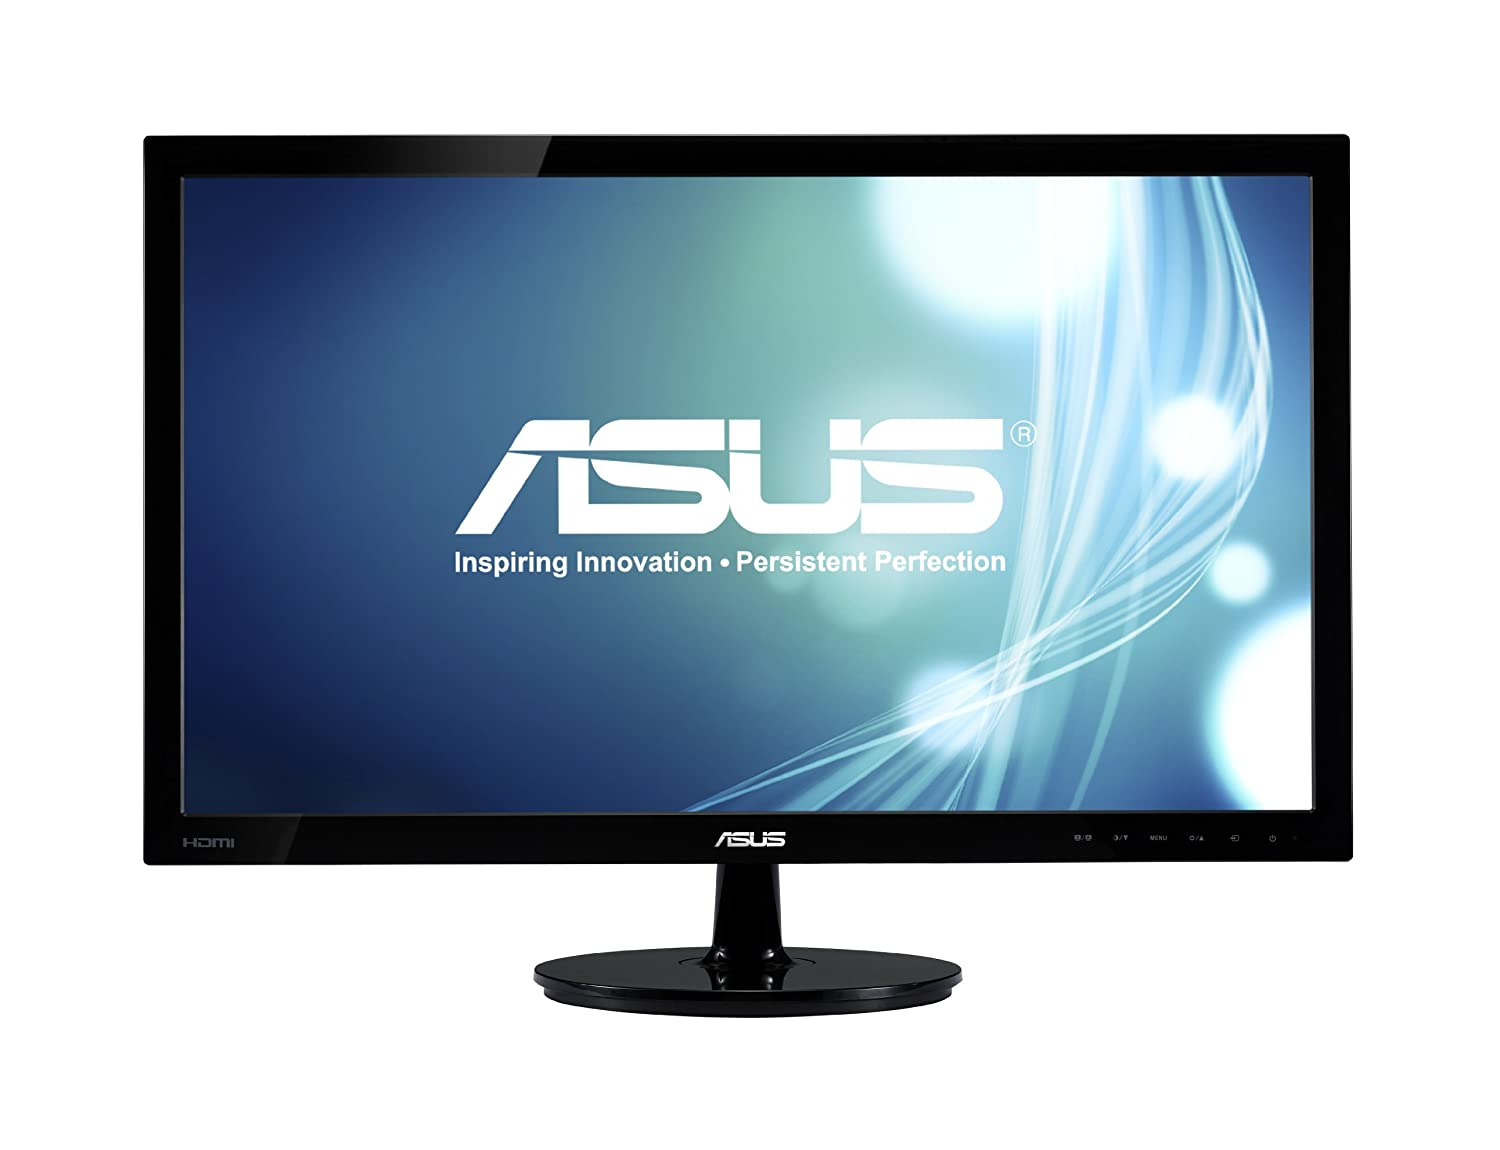 ASUS VS228H-P 21.5' Full HD 1920 x 1080 monitor